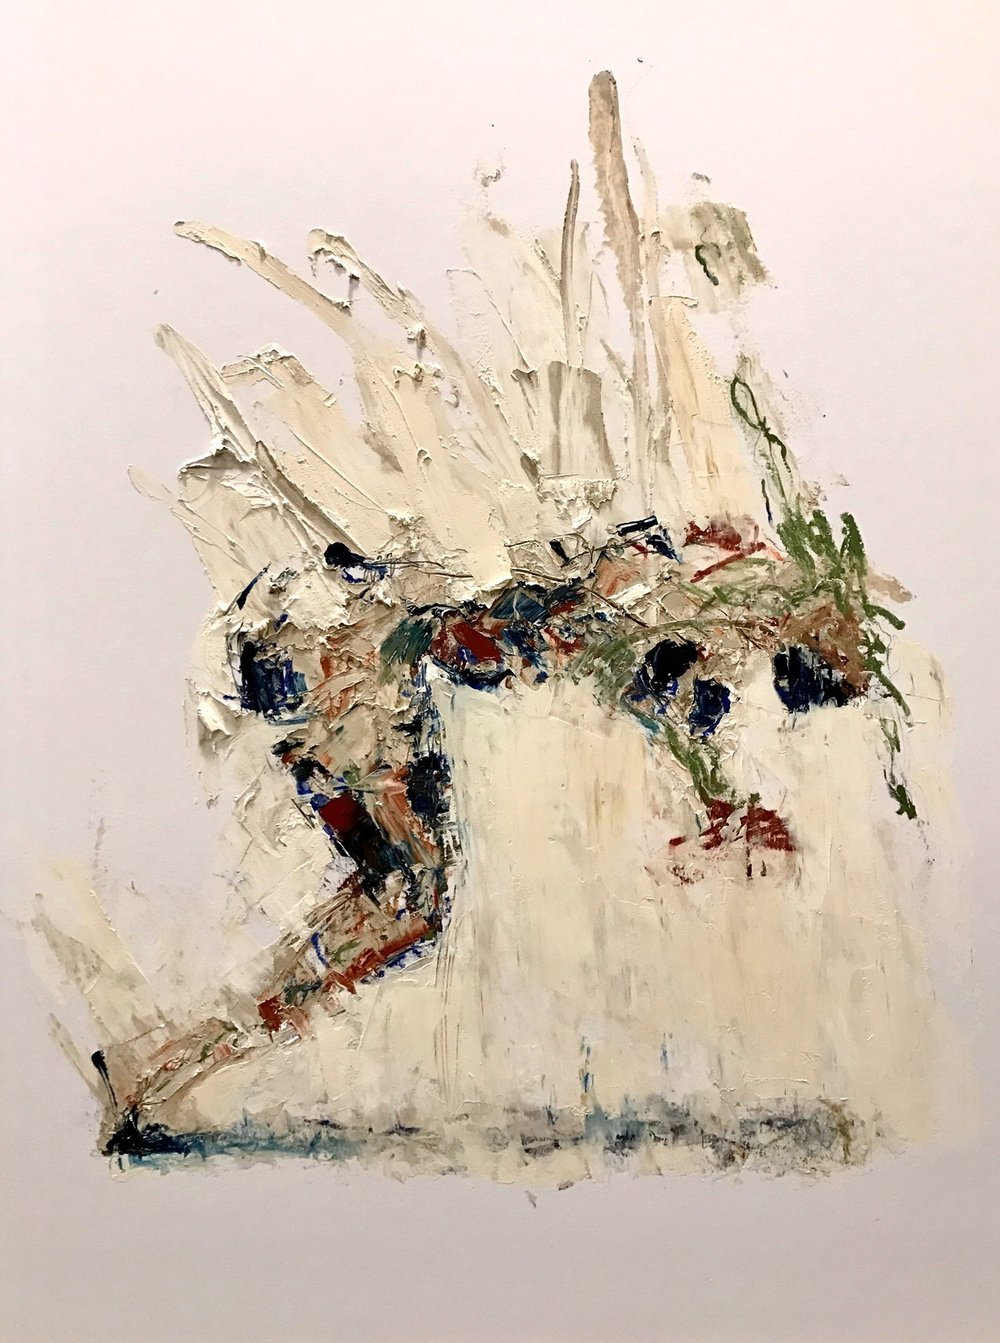 John Goodman     Falling Figure #1,  2017 Oil & Mixed Media on Panel 40 x 30 inches      For More Information     Artist Biography, Exhibitions & Collections